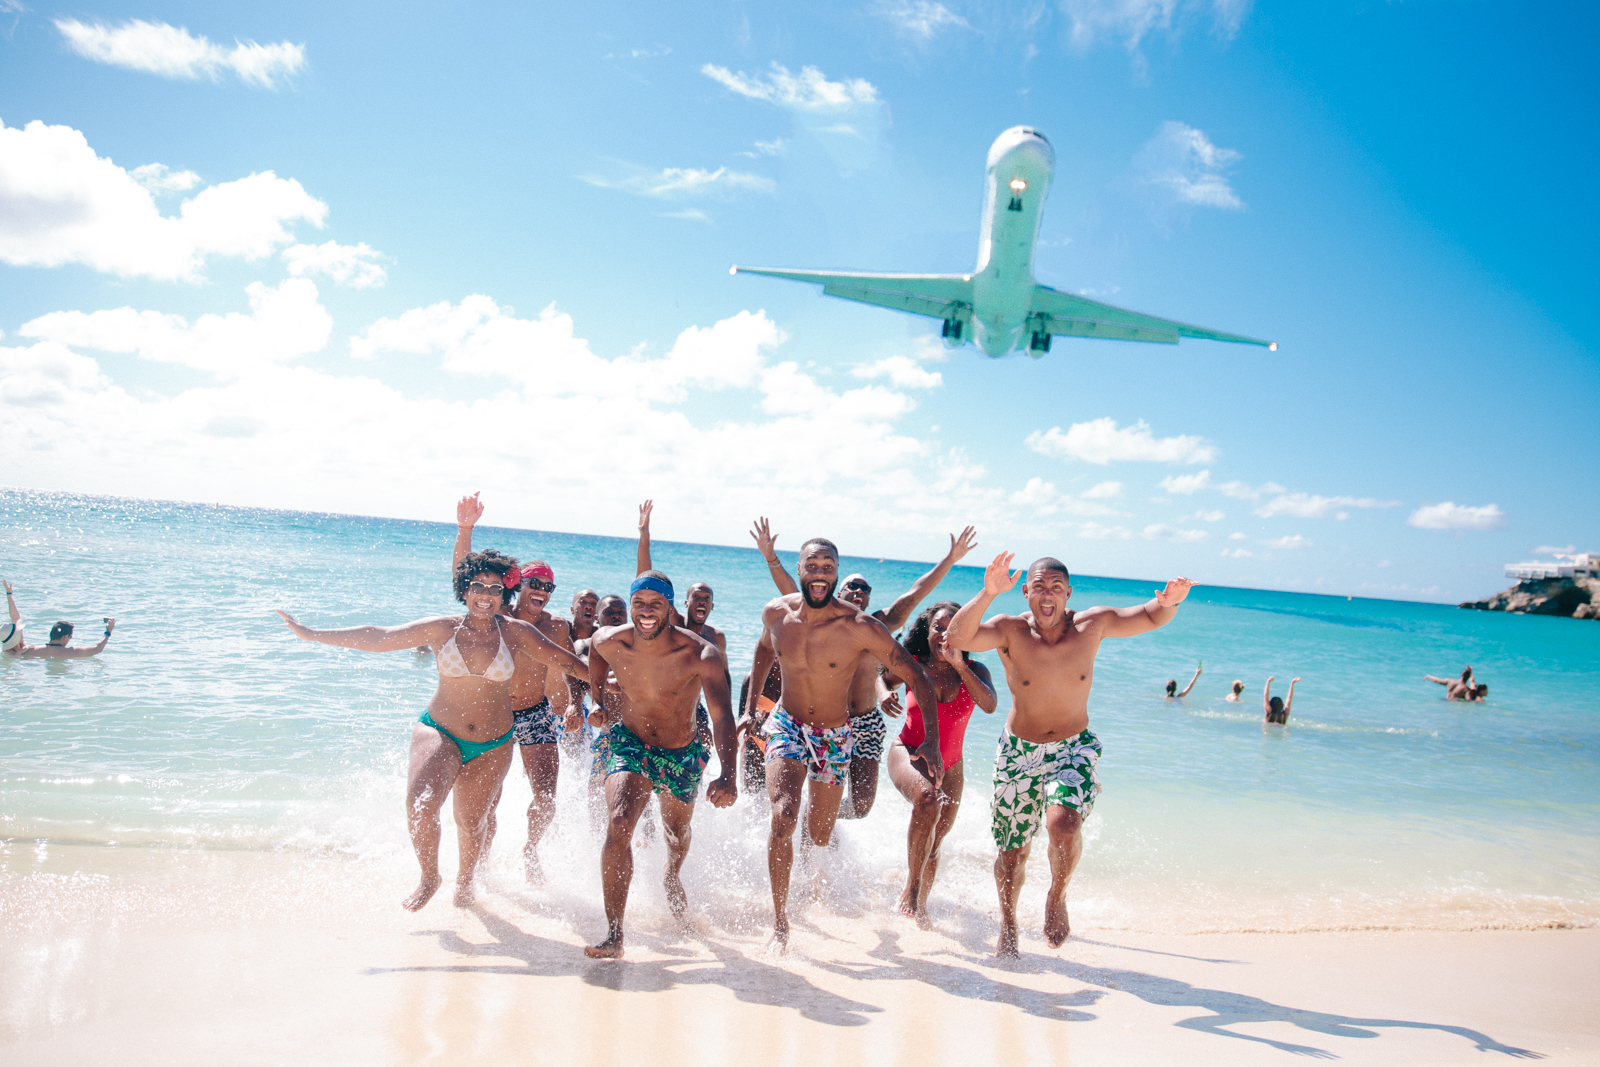 St. Maarten, 2015. Celebrating the 30th Birthday of my good friend  James Bland .   Have you ever wondered how I plan these ridiculous group trips? How I get so many people to go? How I choose the locations? How we choose what to wear? Well I am finally answering all your questions on this post!